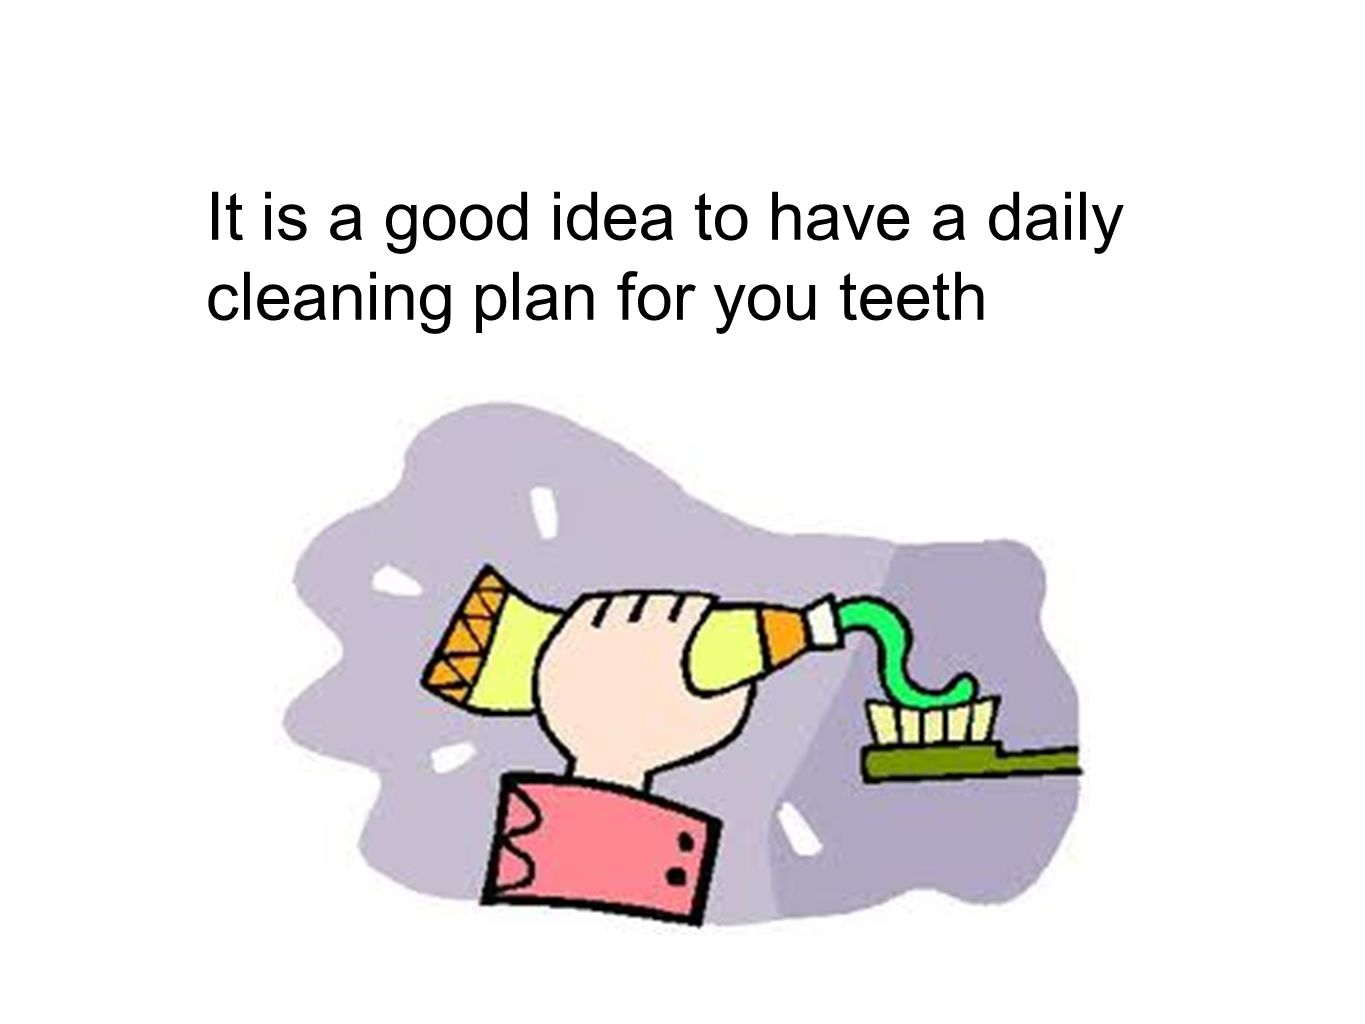 It is a good idea to have a daily cleaning plan for you teeth